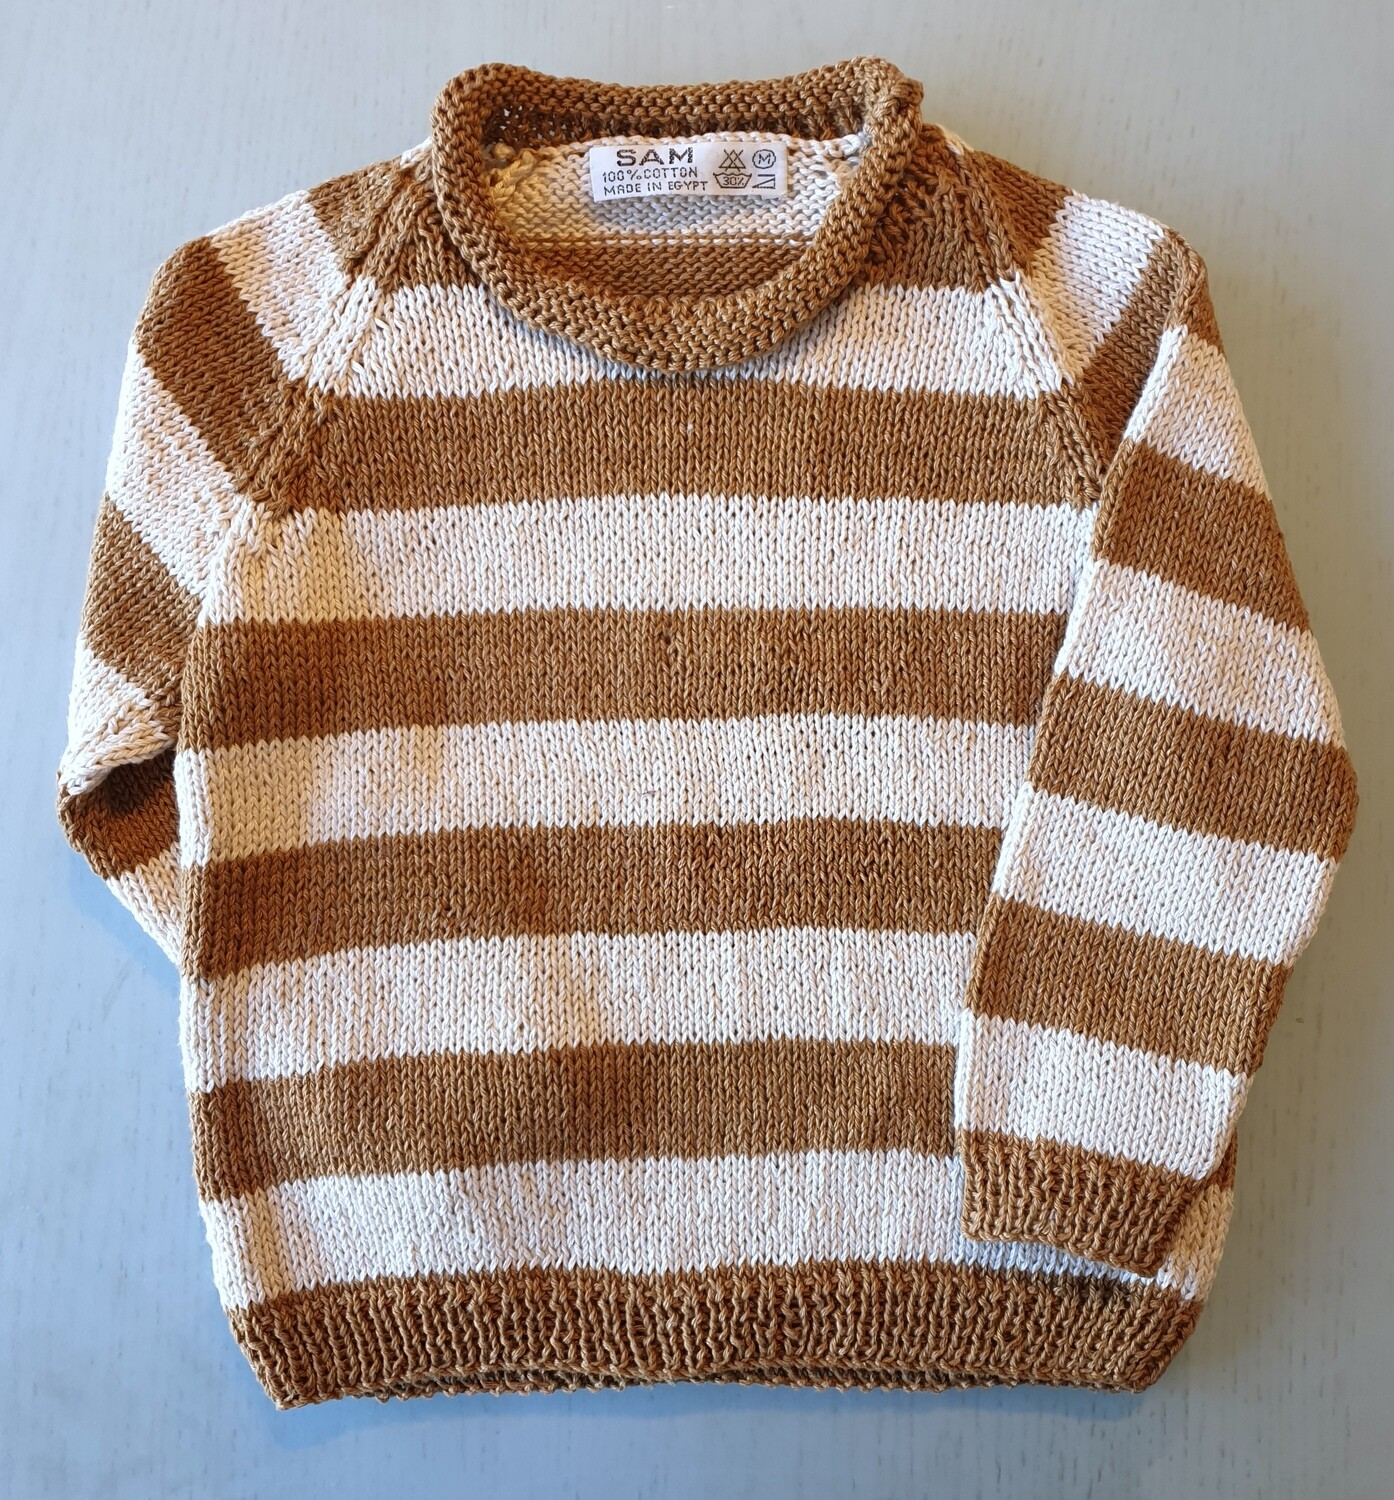 Caramel Brown & Cream Striped Pullover (Medium)